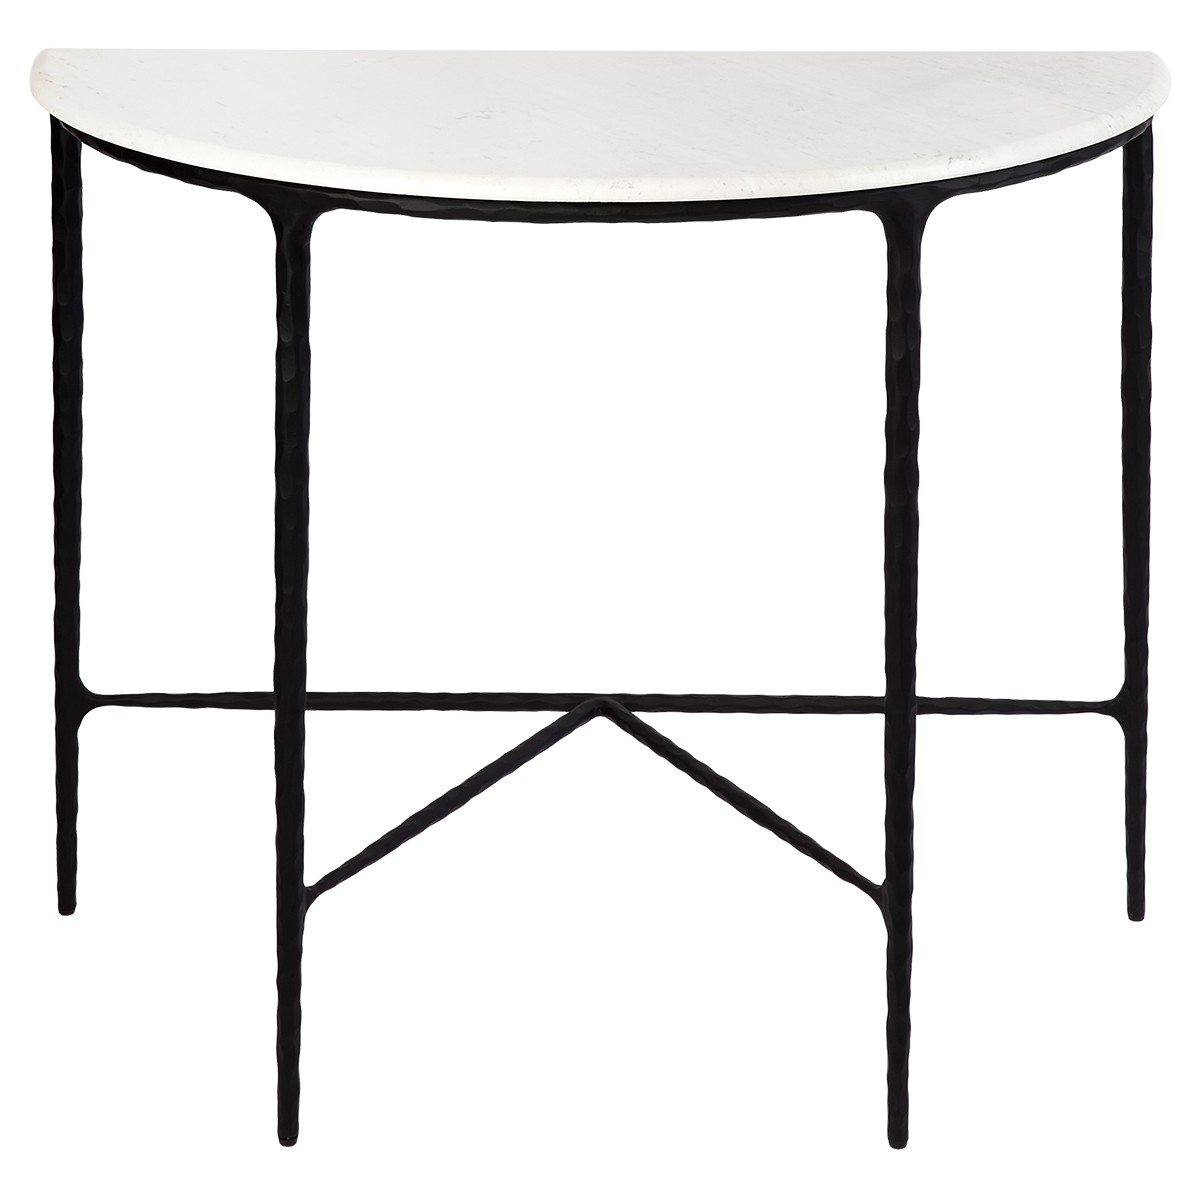 Heston Marble & Iron Demilune Table, 90cm, Black